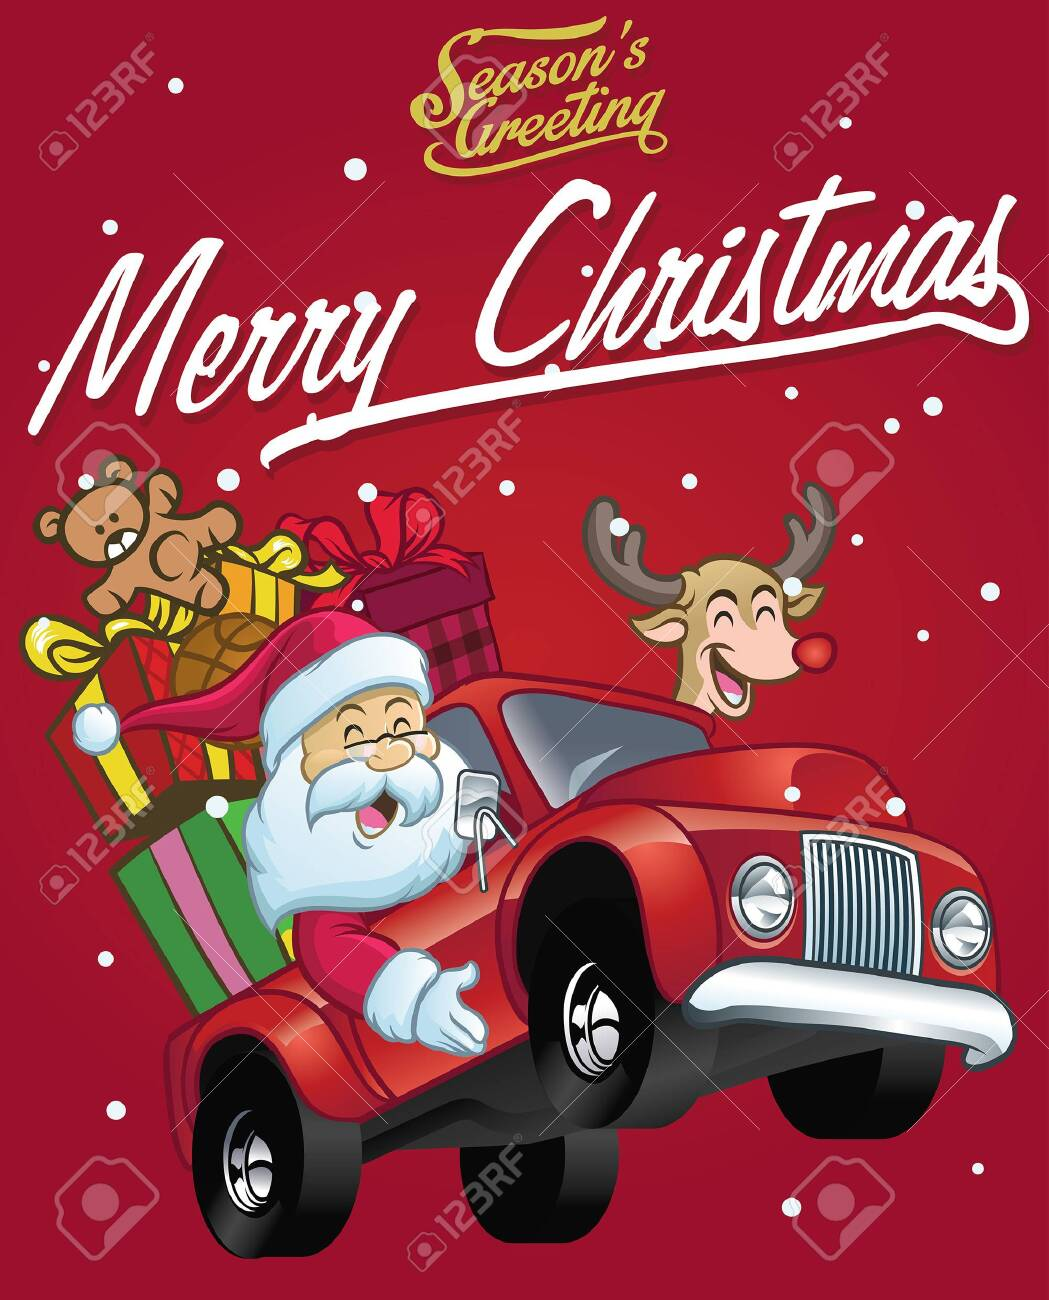 christmas greeting card with santa claus and the deer riding car - 126488642